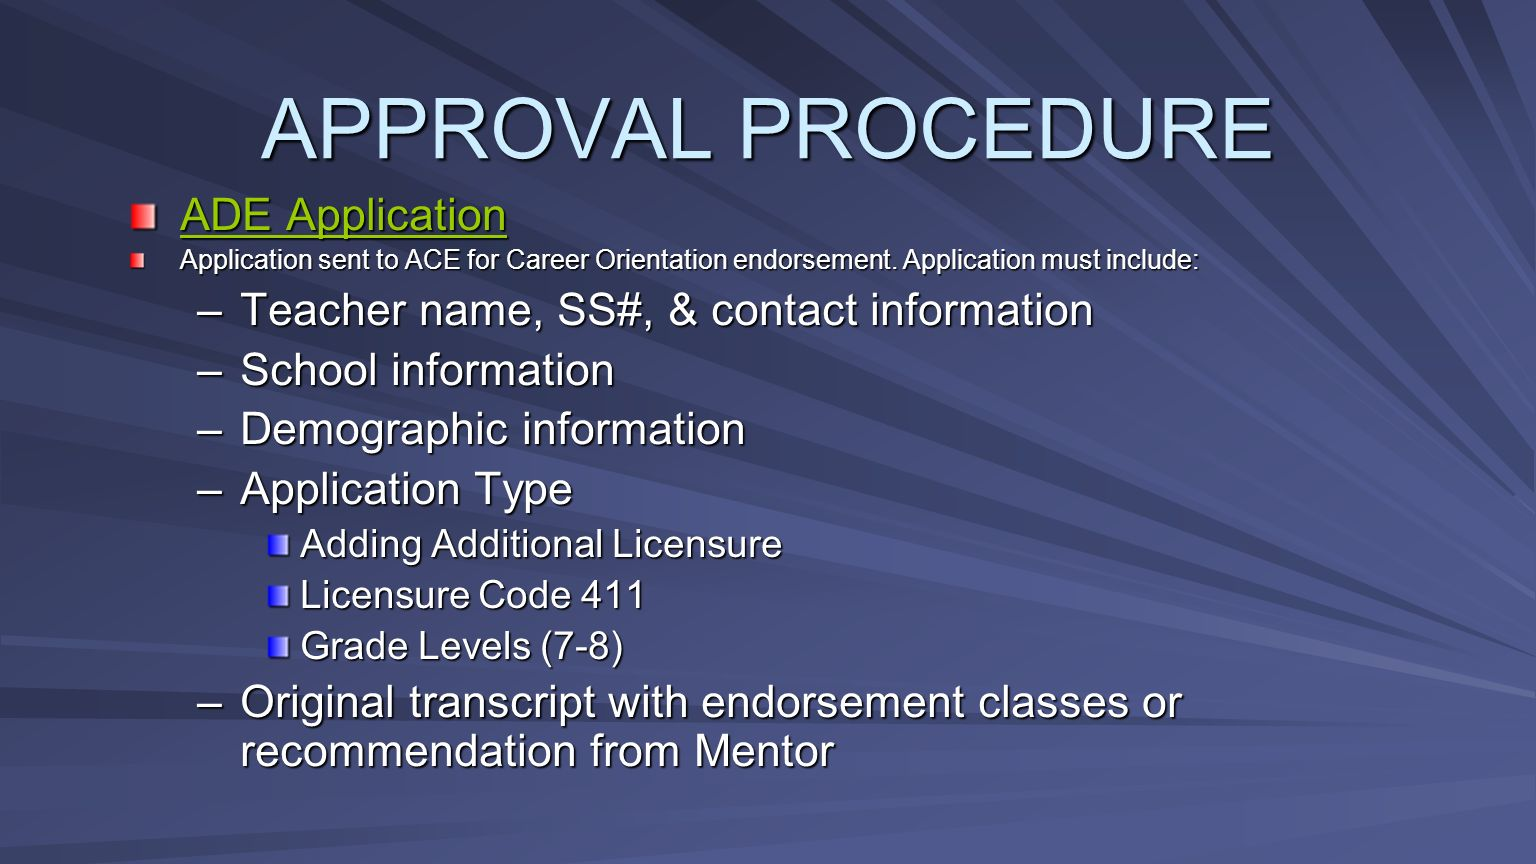 APPROVAL PROCEDURE ADE Application ADE Application Application sent to ACE for Career Orientation endorsement.